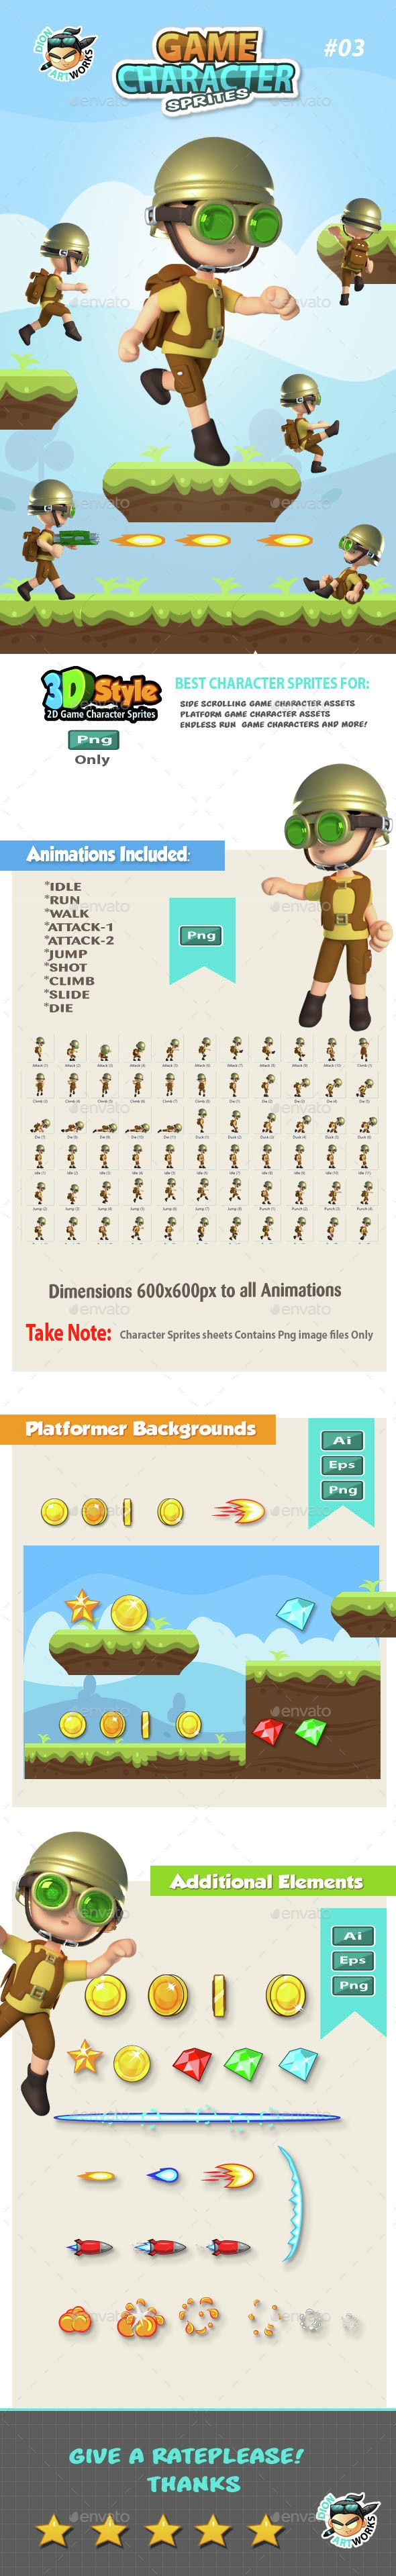 3D Style Game Character Sprites 03 - #Sprites #Game #Assets Download here: https://graphicriver.net/item/3d-style-game-character-sprites-03/14763257?ref=alena994